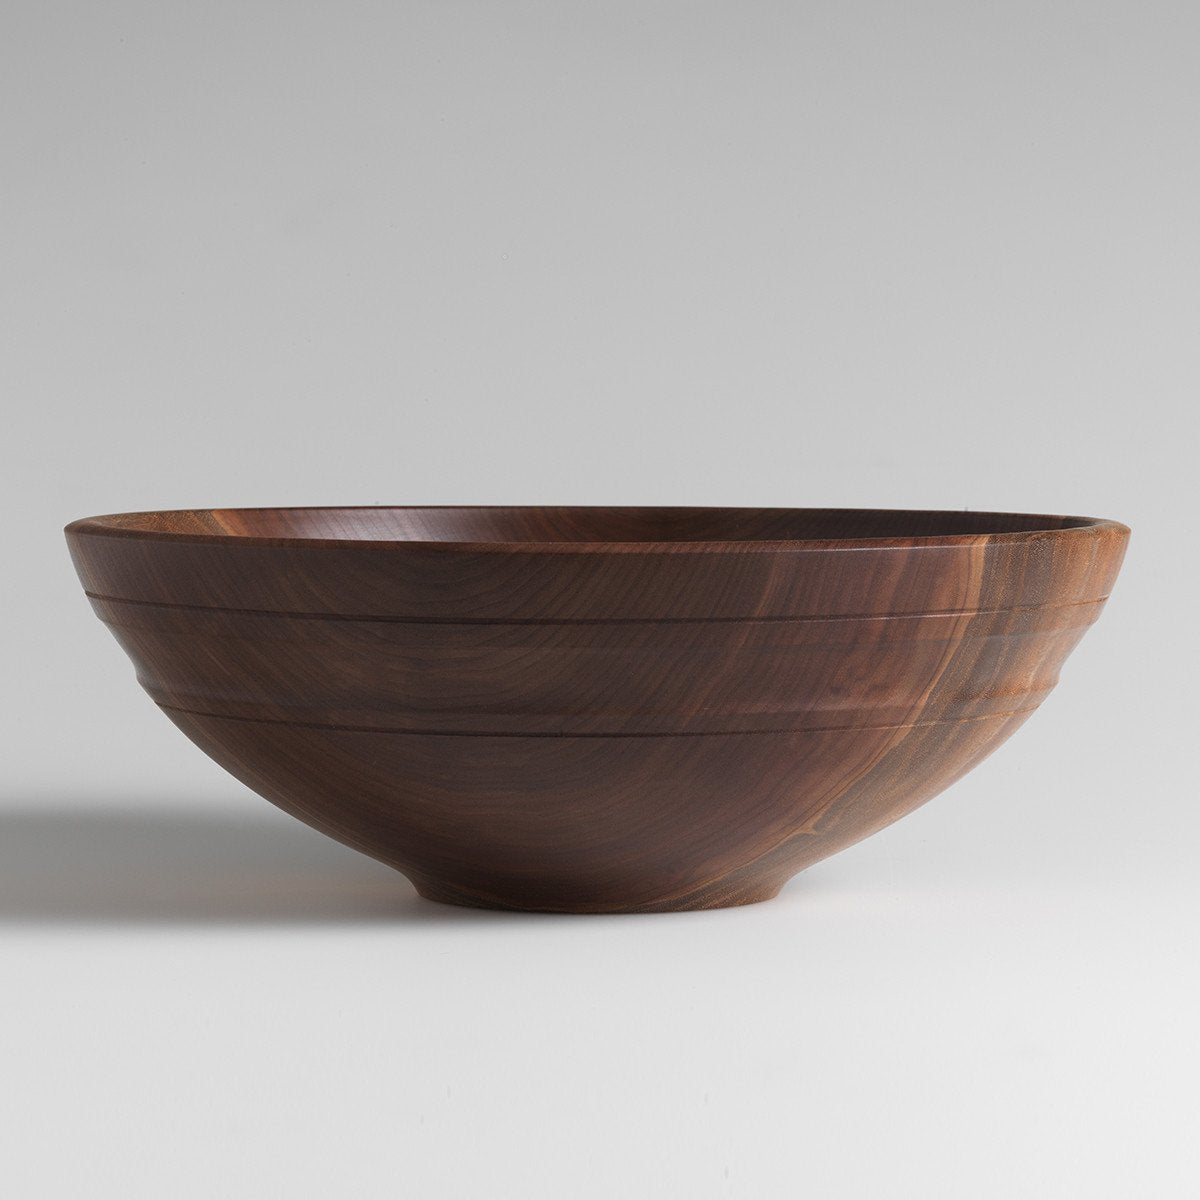 Willoughby Bowl in Black Walnut